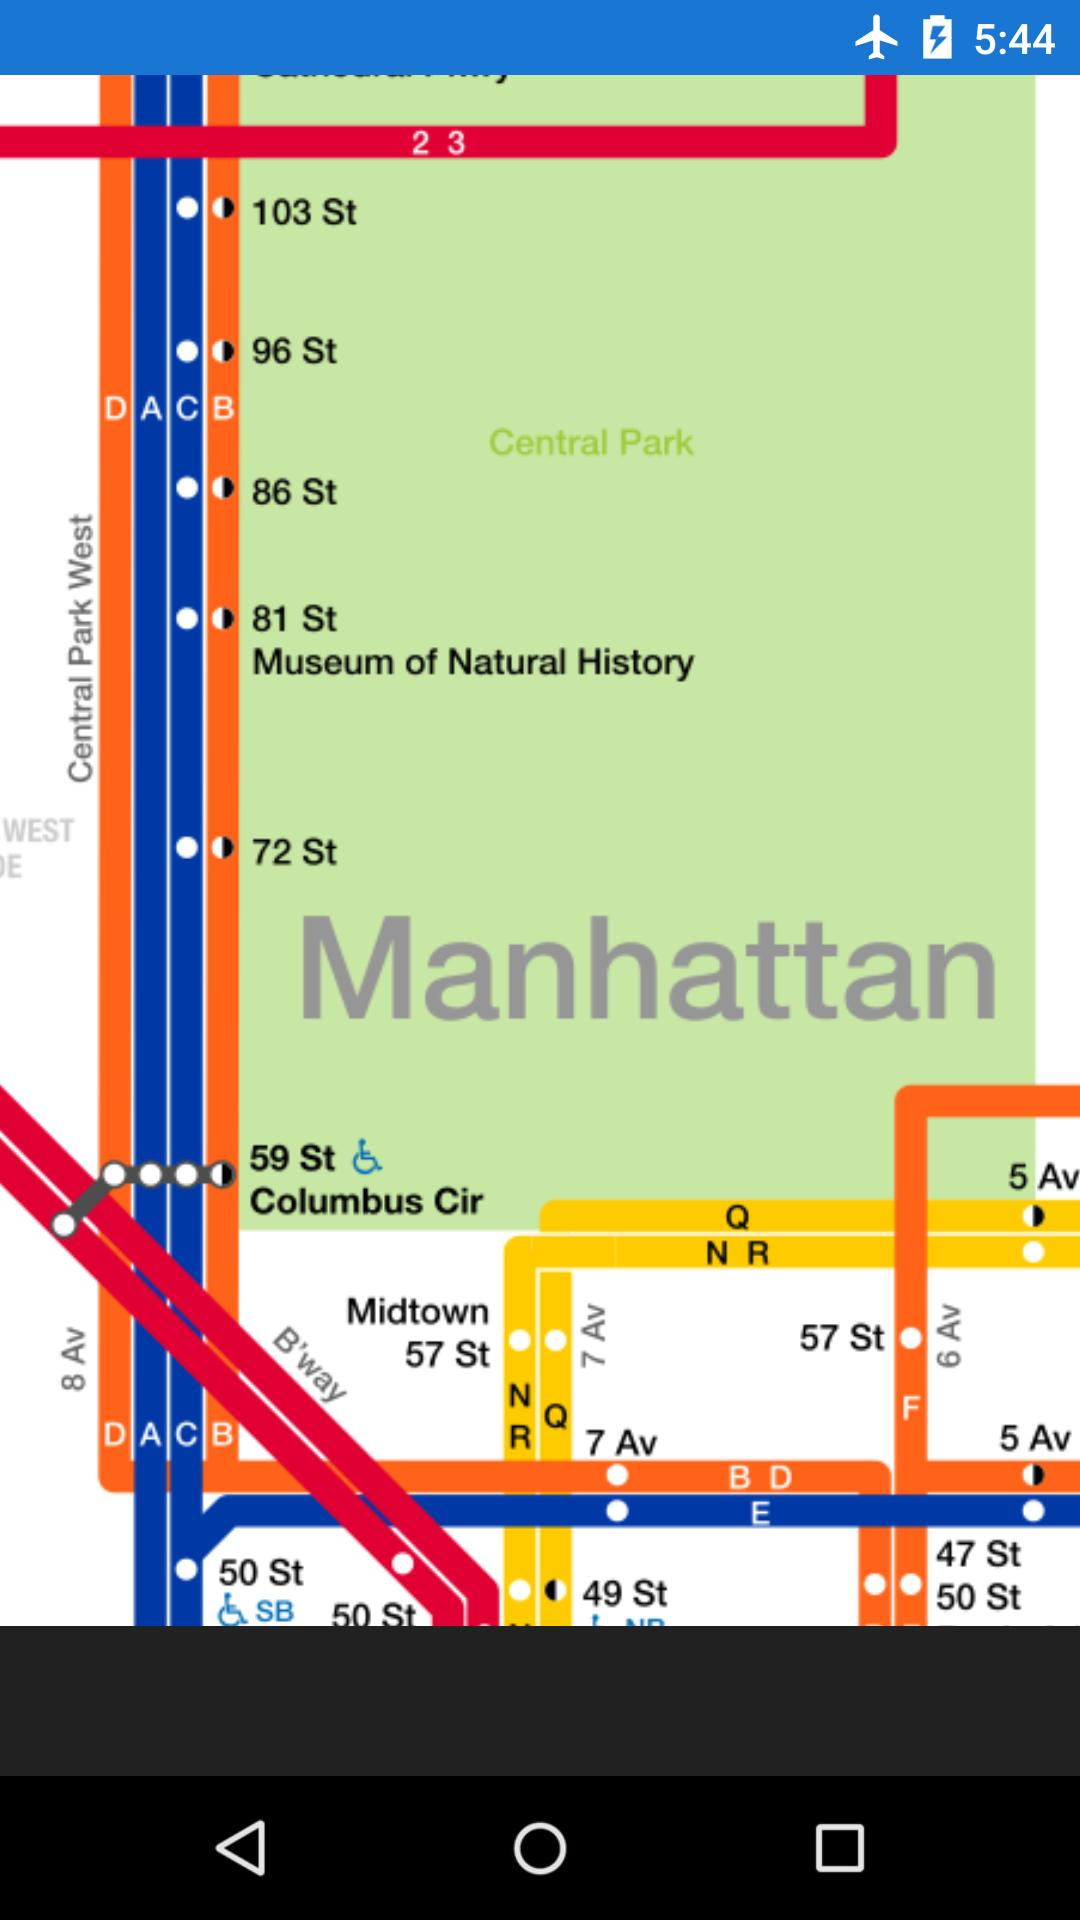 Subway Map From 88 St To 59th Street.Nyc Subway Map For Android Apk Download